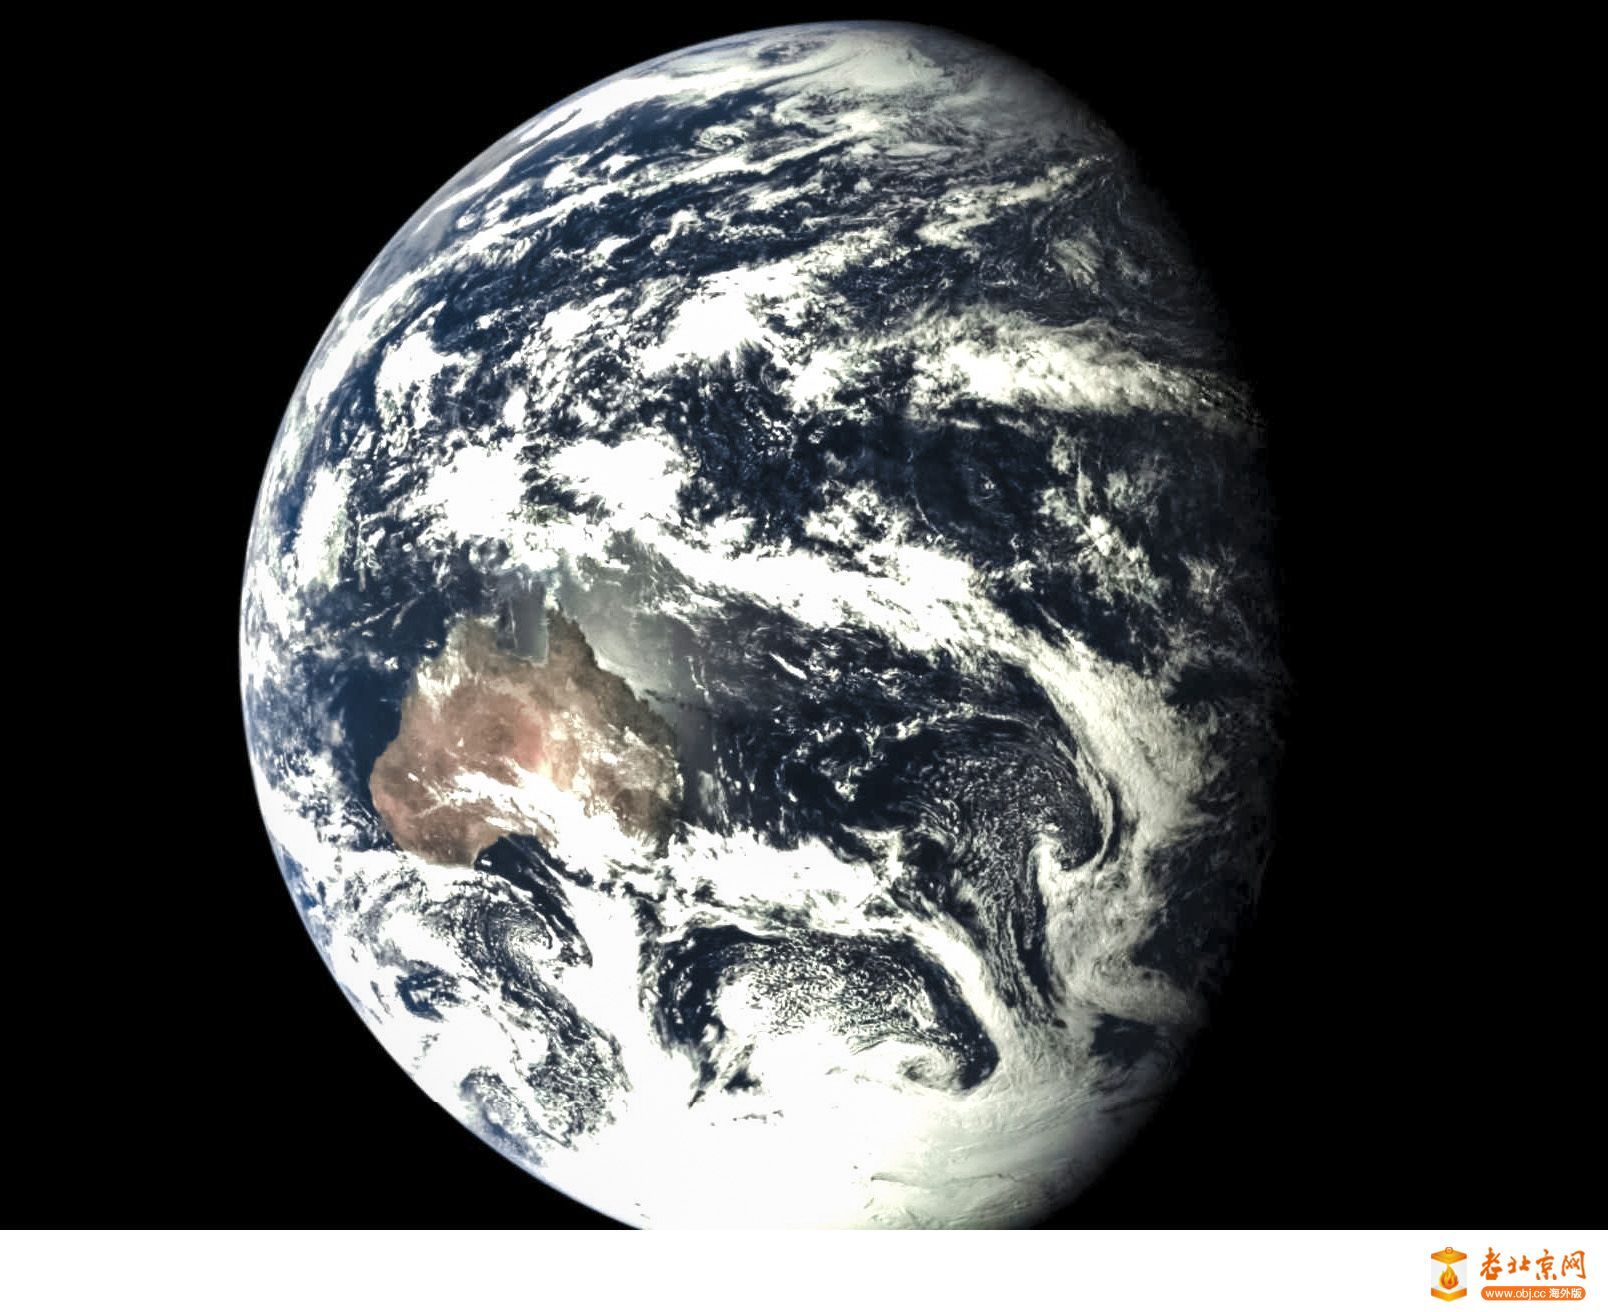 地月雙輝  A incredible picture of Earth and Moon together